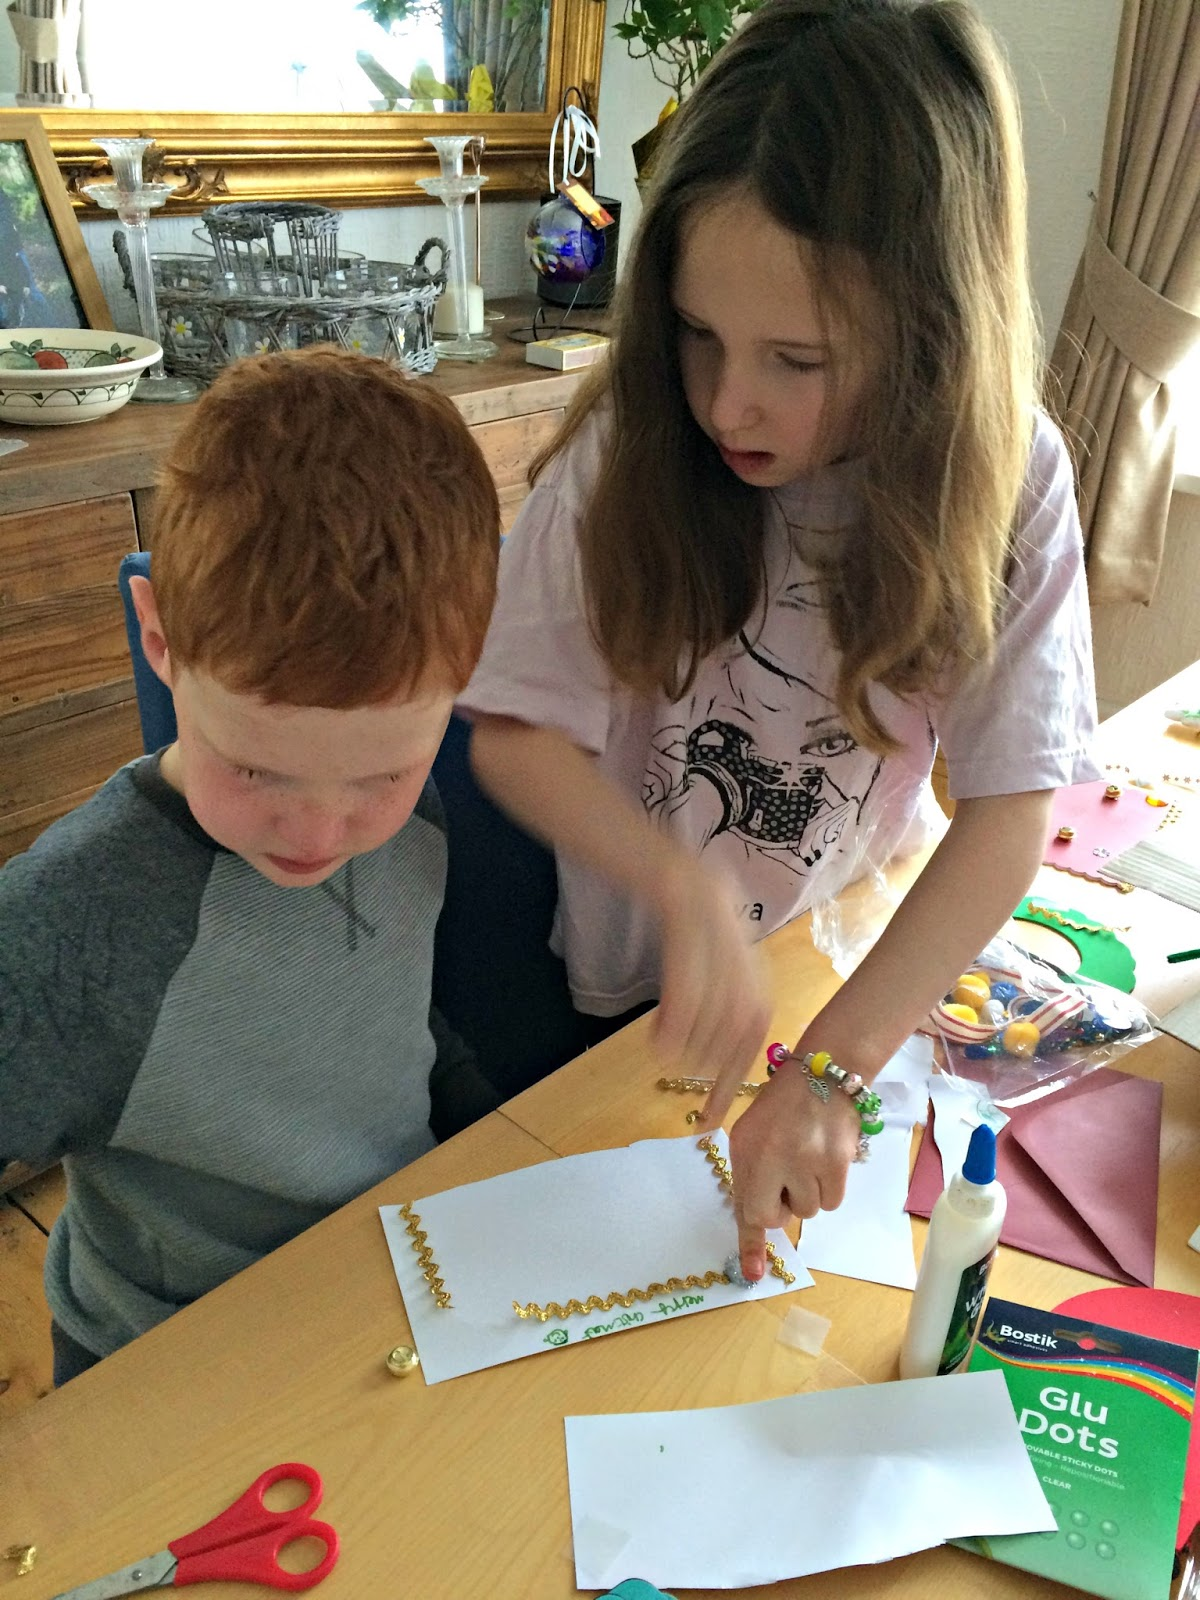 Caitlin & Ieuan making a Christmas card together